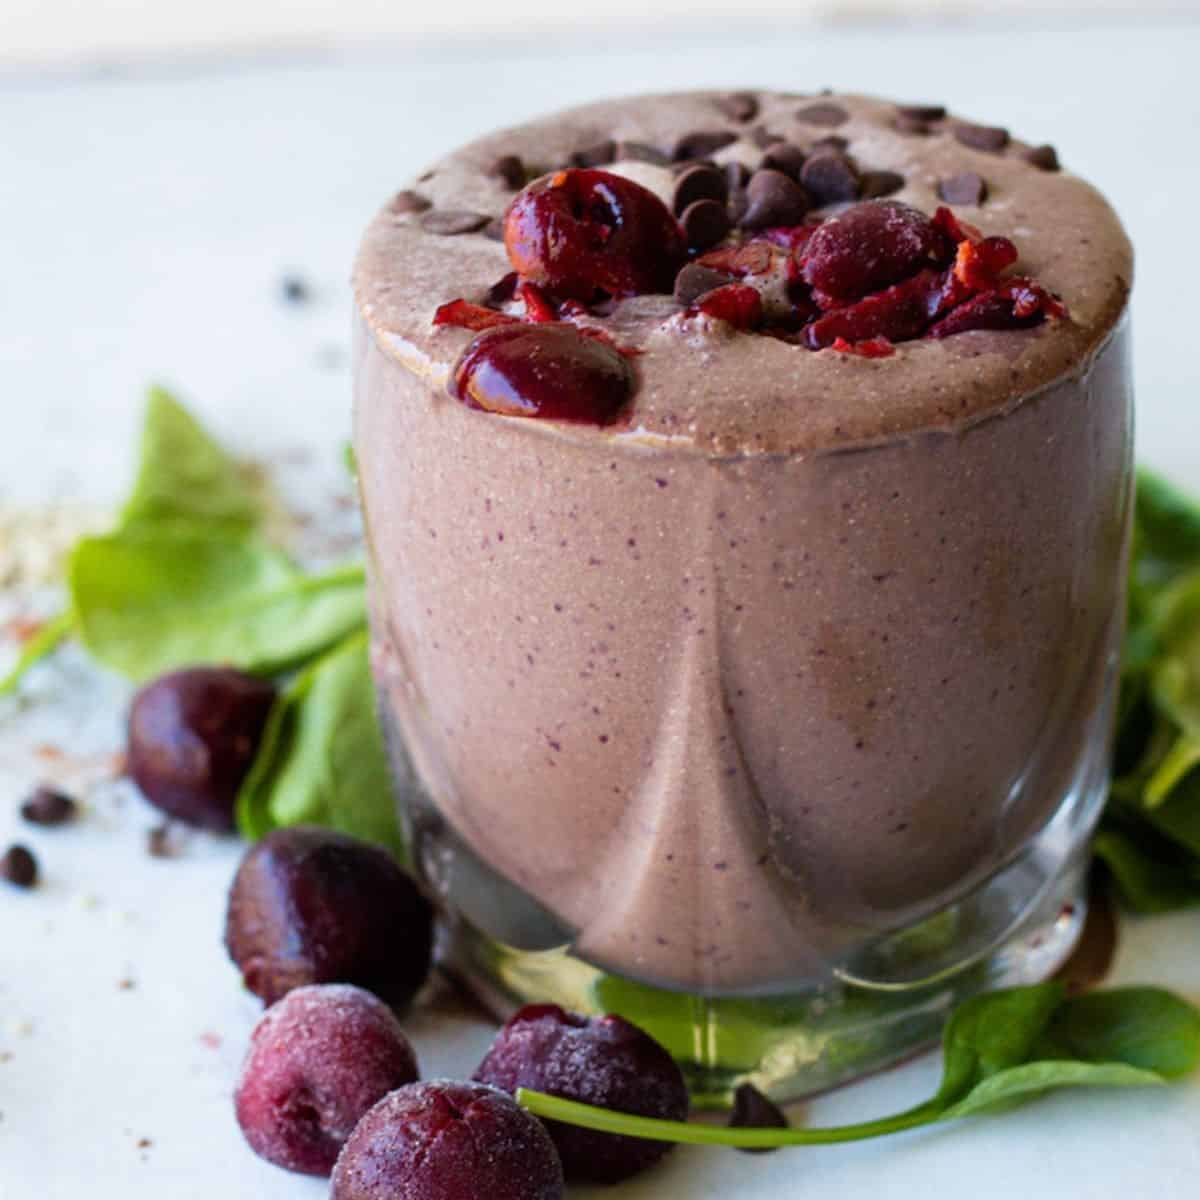 chocolate cherry smoothie garnished with cherries and chocolate chips.